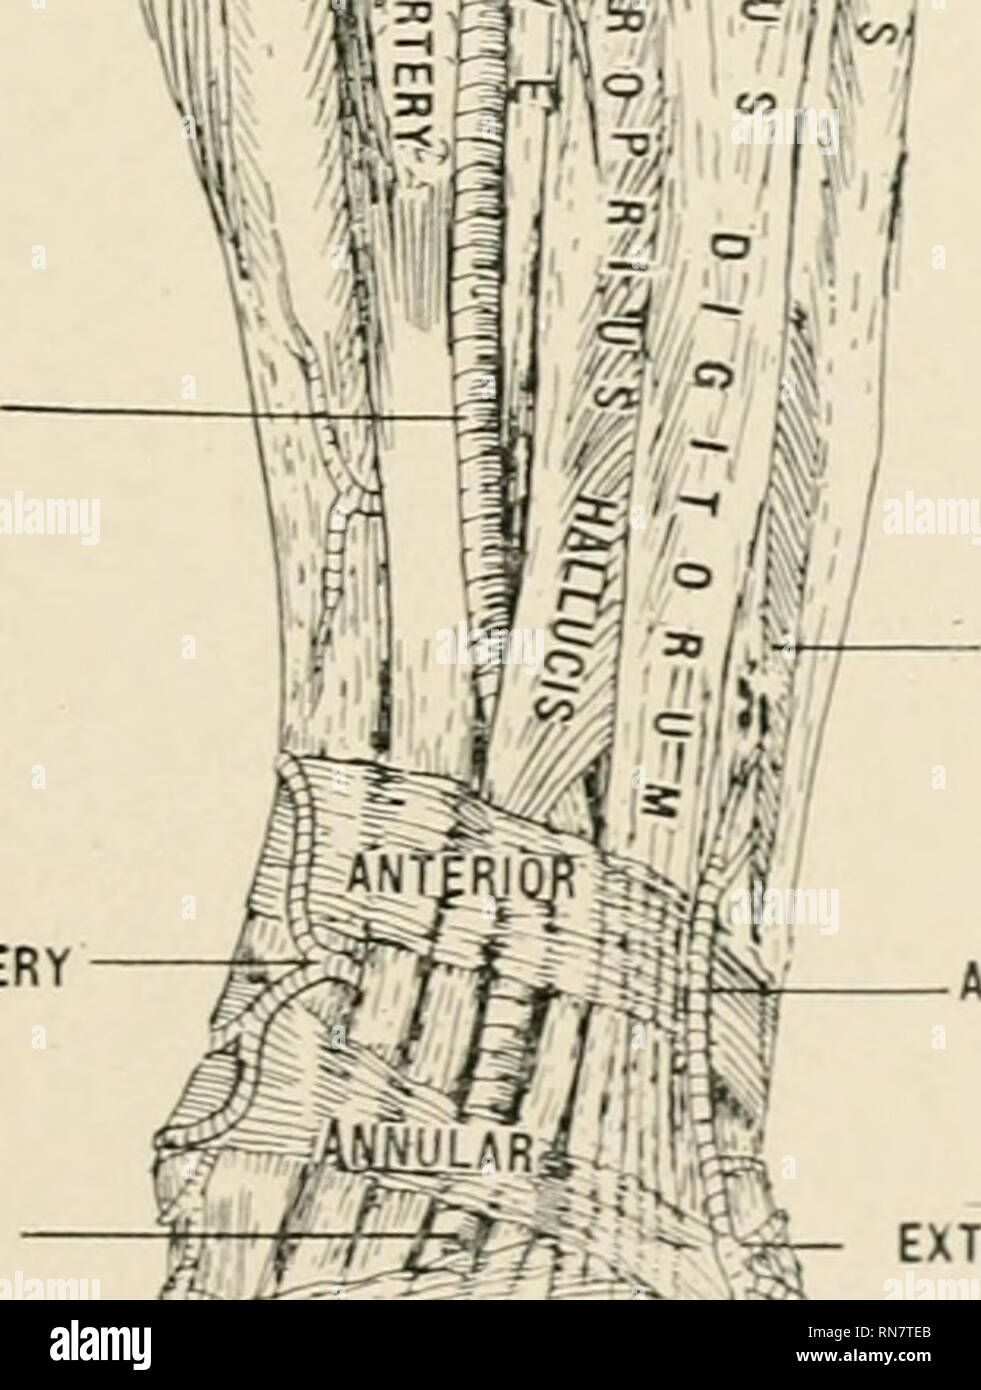 """. Anatomy in a nutshell : a treatise on human anatomy in its relation to osteopathy. Human anatomy; Osteopathic medicine; Osteopathic Medicine; Anatomy. SUPERIOR EXTERNAL ARTICULAR APTERY INFERIOR EXTERNAL ARTICULAR ARTERY GASTROCNEMIUS SOLEUS m i i til S ')°'i^^ l""""-i LONGUS H ANTERIOR TIBIAL ARTERY INTERNAL MALLEOLAR ARTERY. BREVIS TERTIUS ANTERIOR PERONEAL ARTERY M -AfilMLARi. >EDIS ARTERY- 